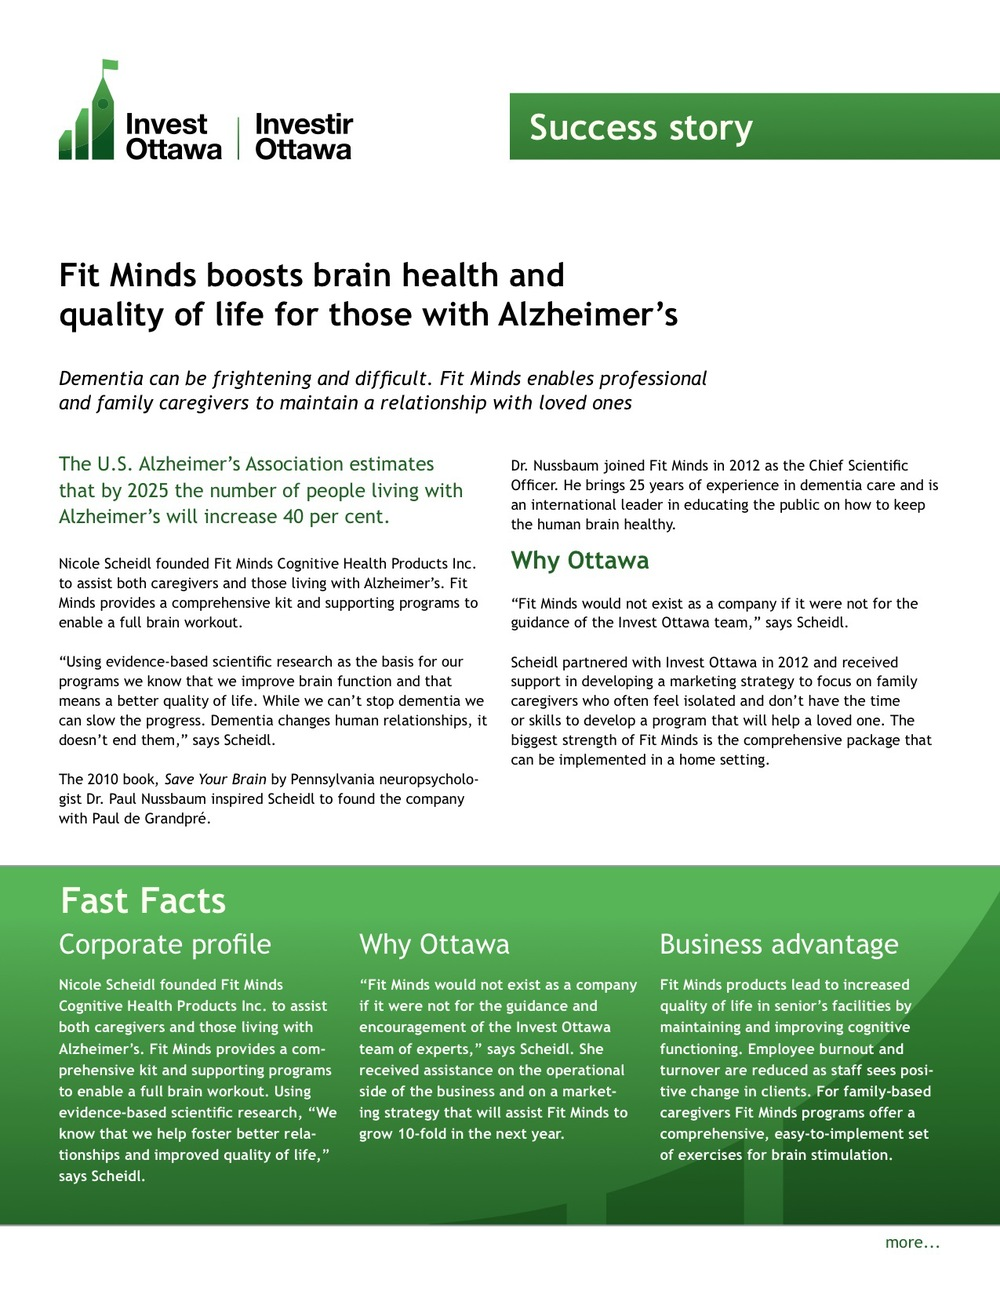 2013-05-24-InvestOttawa-FitMinds-VIEW-page1.jpg